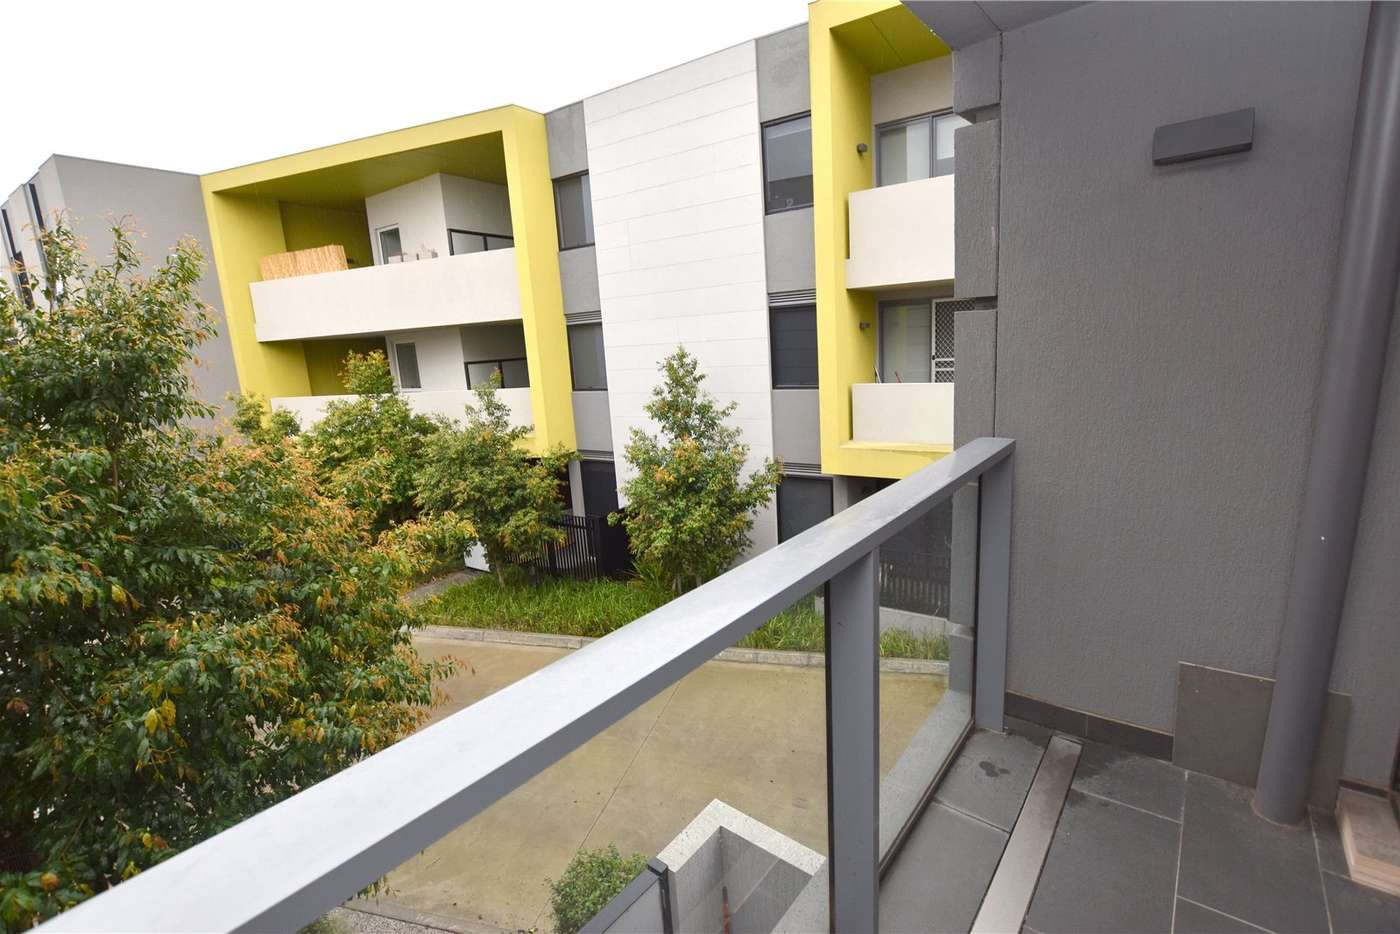 Seventh view of Homely apartment listing, 110/88 Cade Way, Parkville VIC 3052